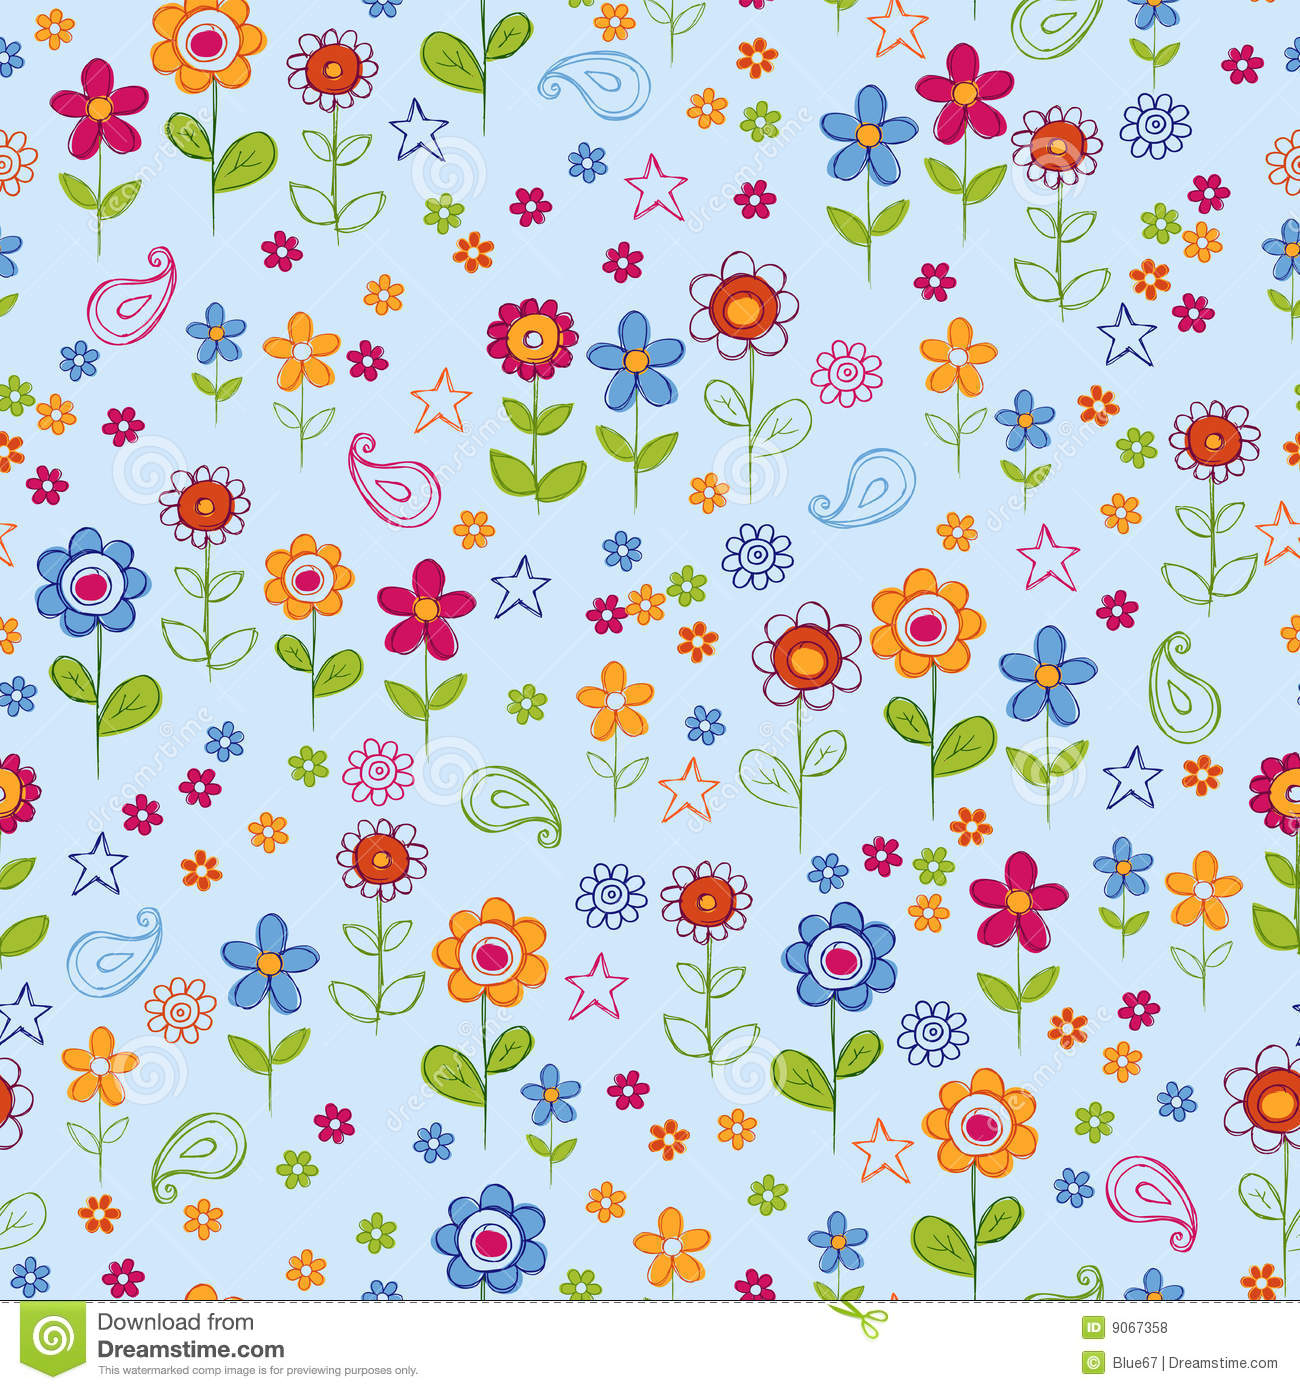 Doodle Flower Garden Seamless Repeat Pattern